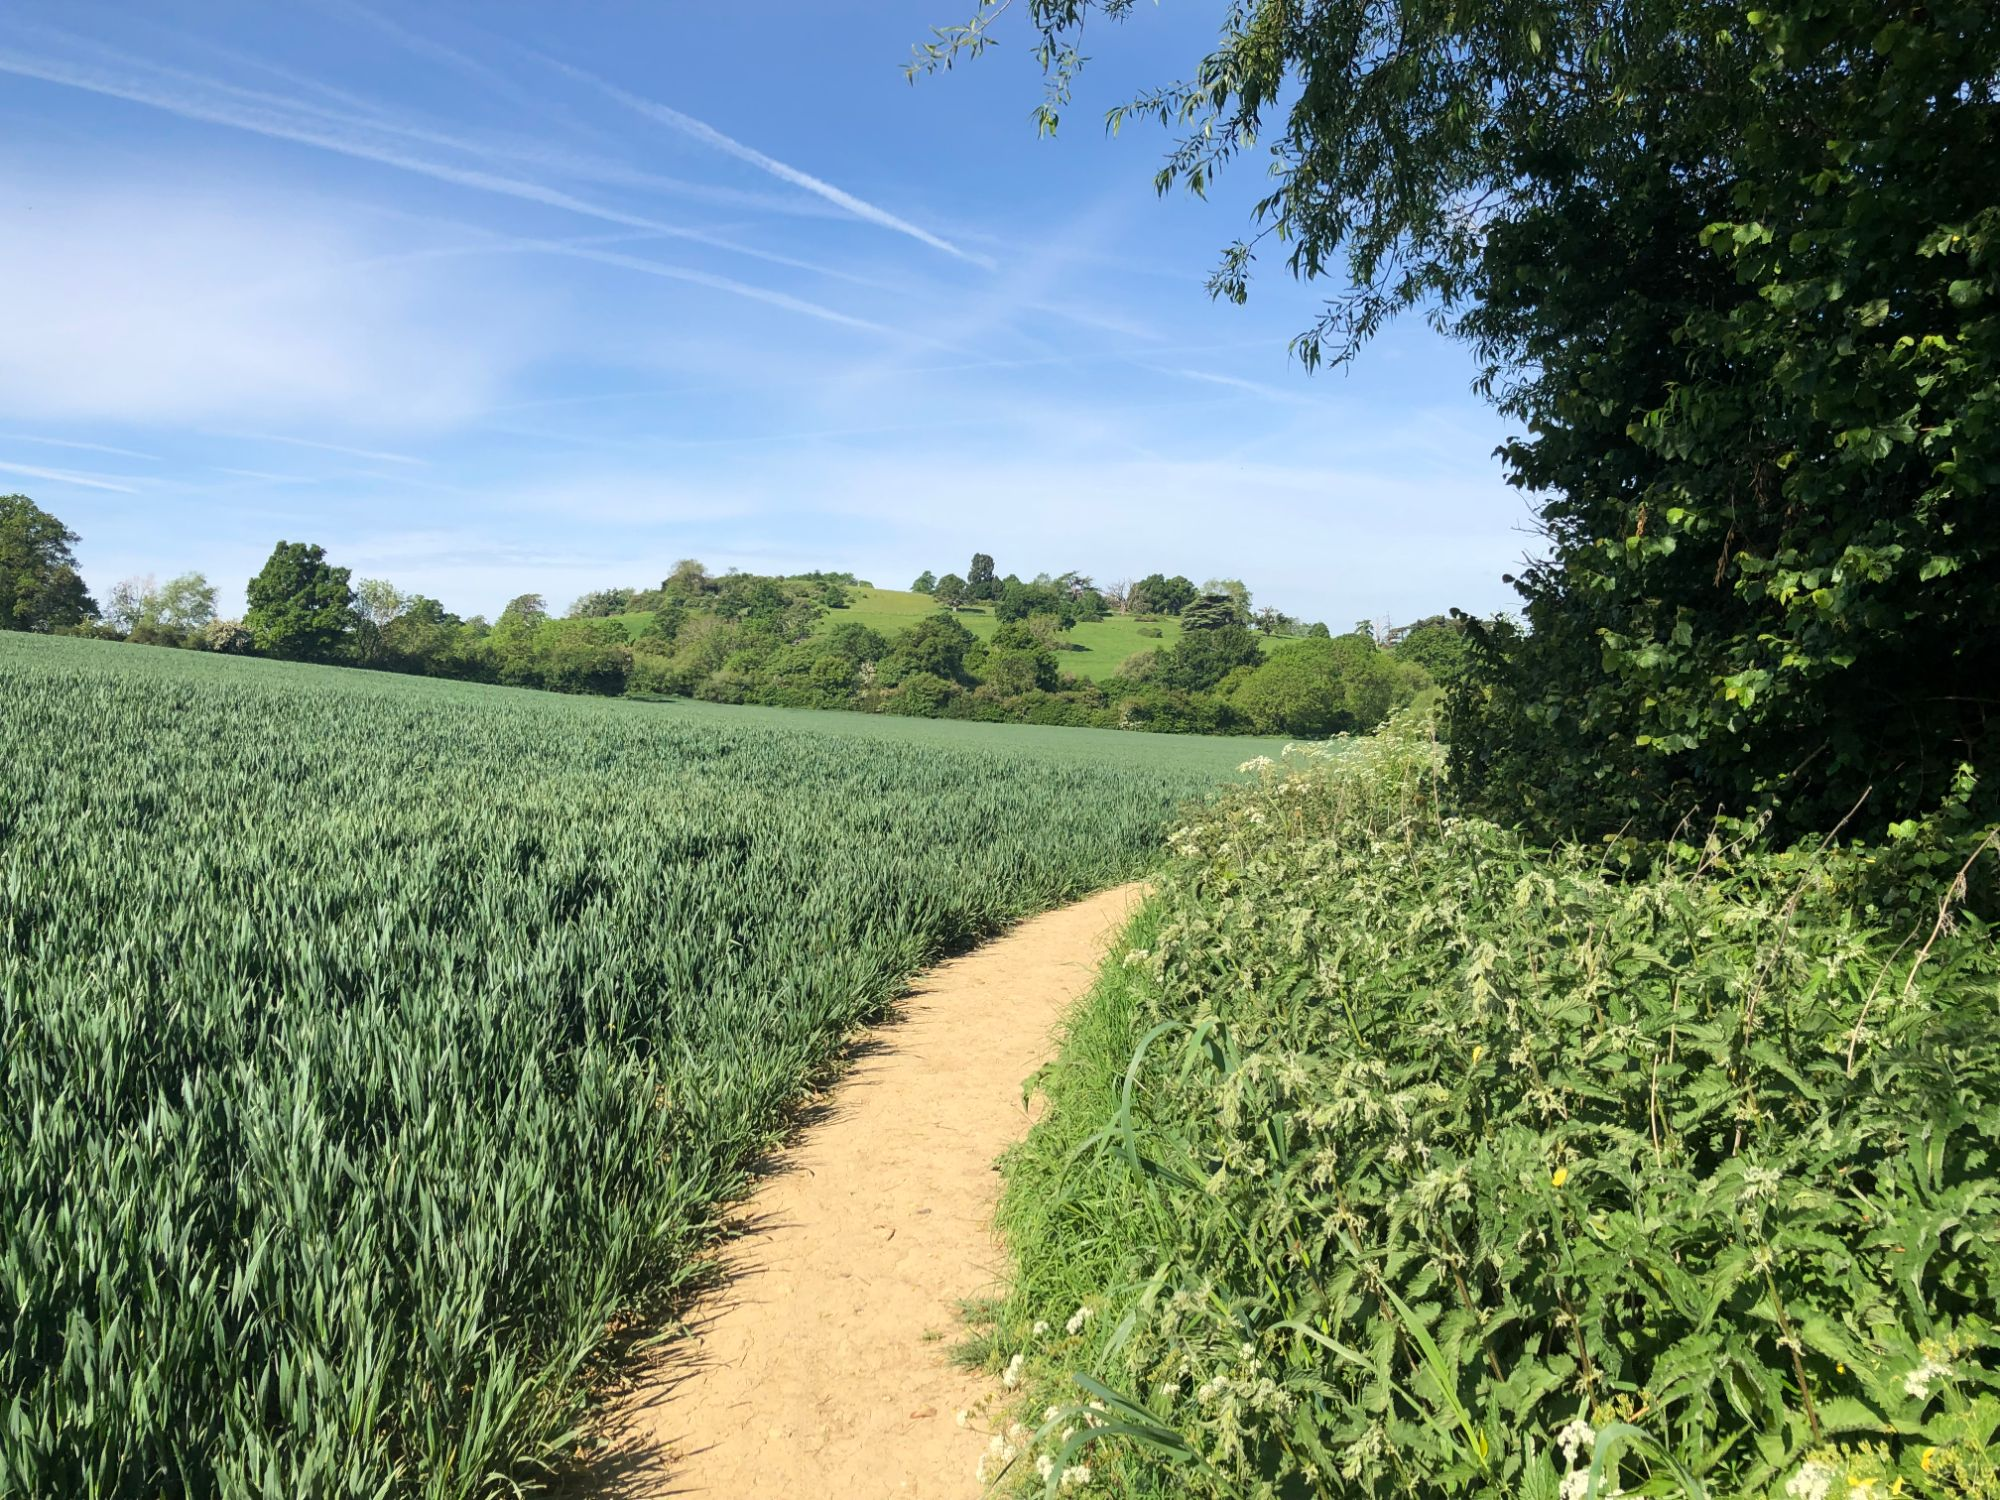 Free stock photo British farmers field crops agriculture sunbeam peaceful nature country public footpath